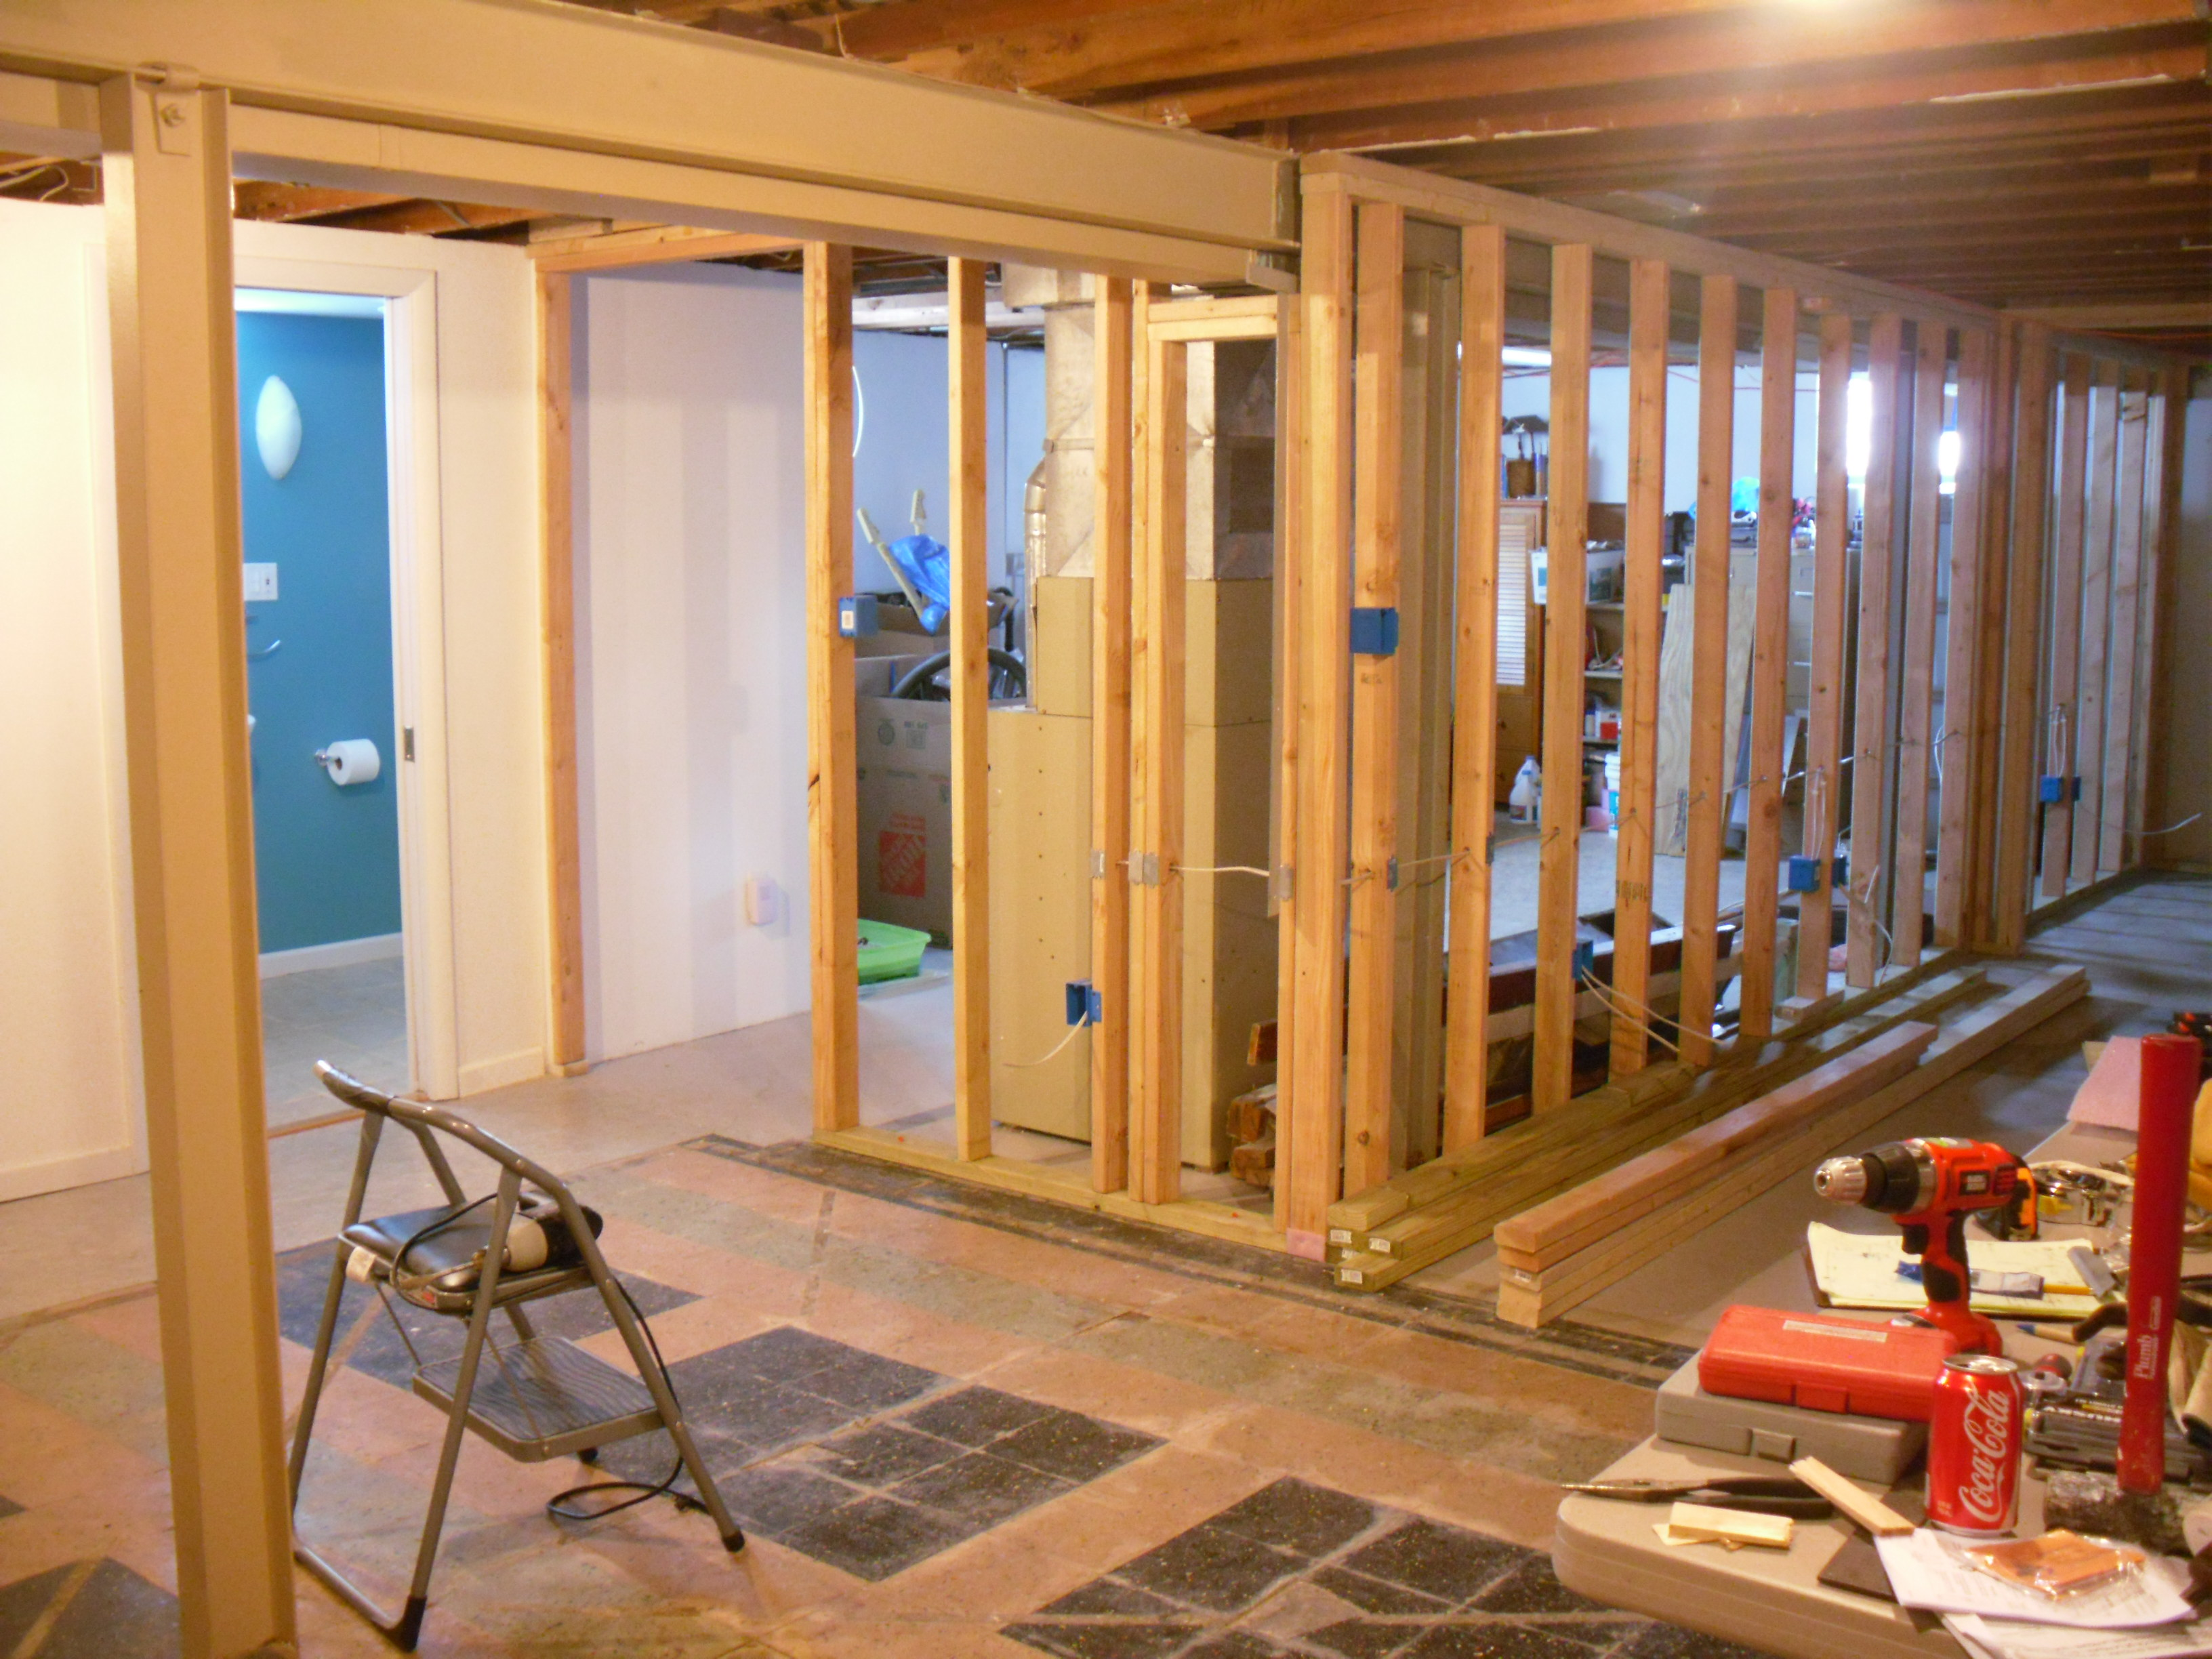 Fascinating 10 floating wall frame design inspiration of for How to build floating walls in basement